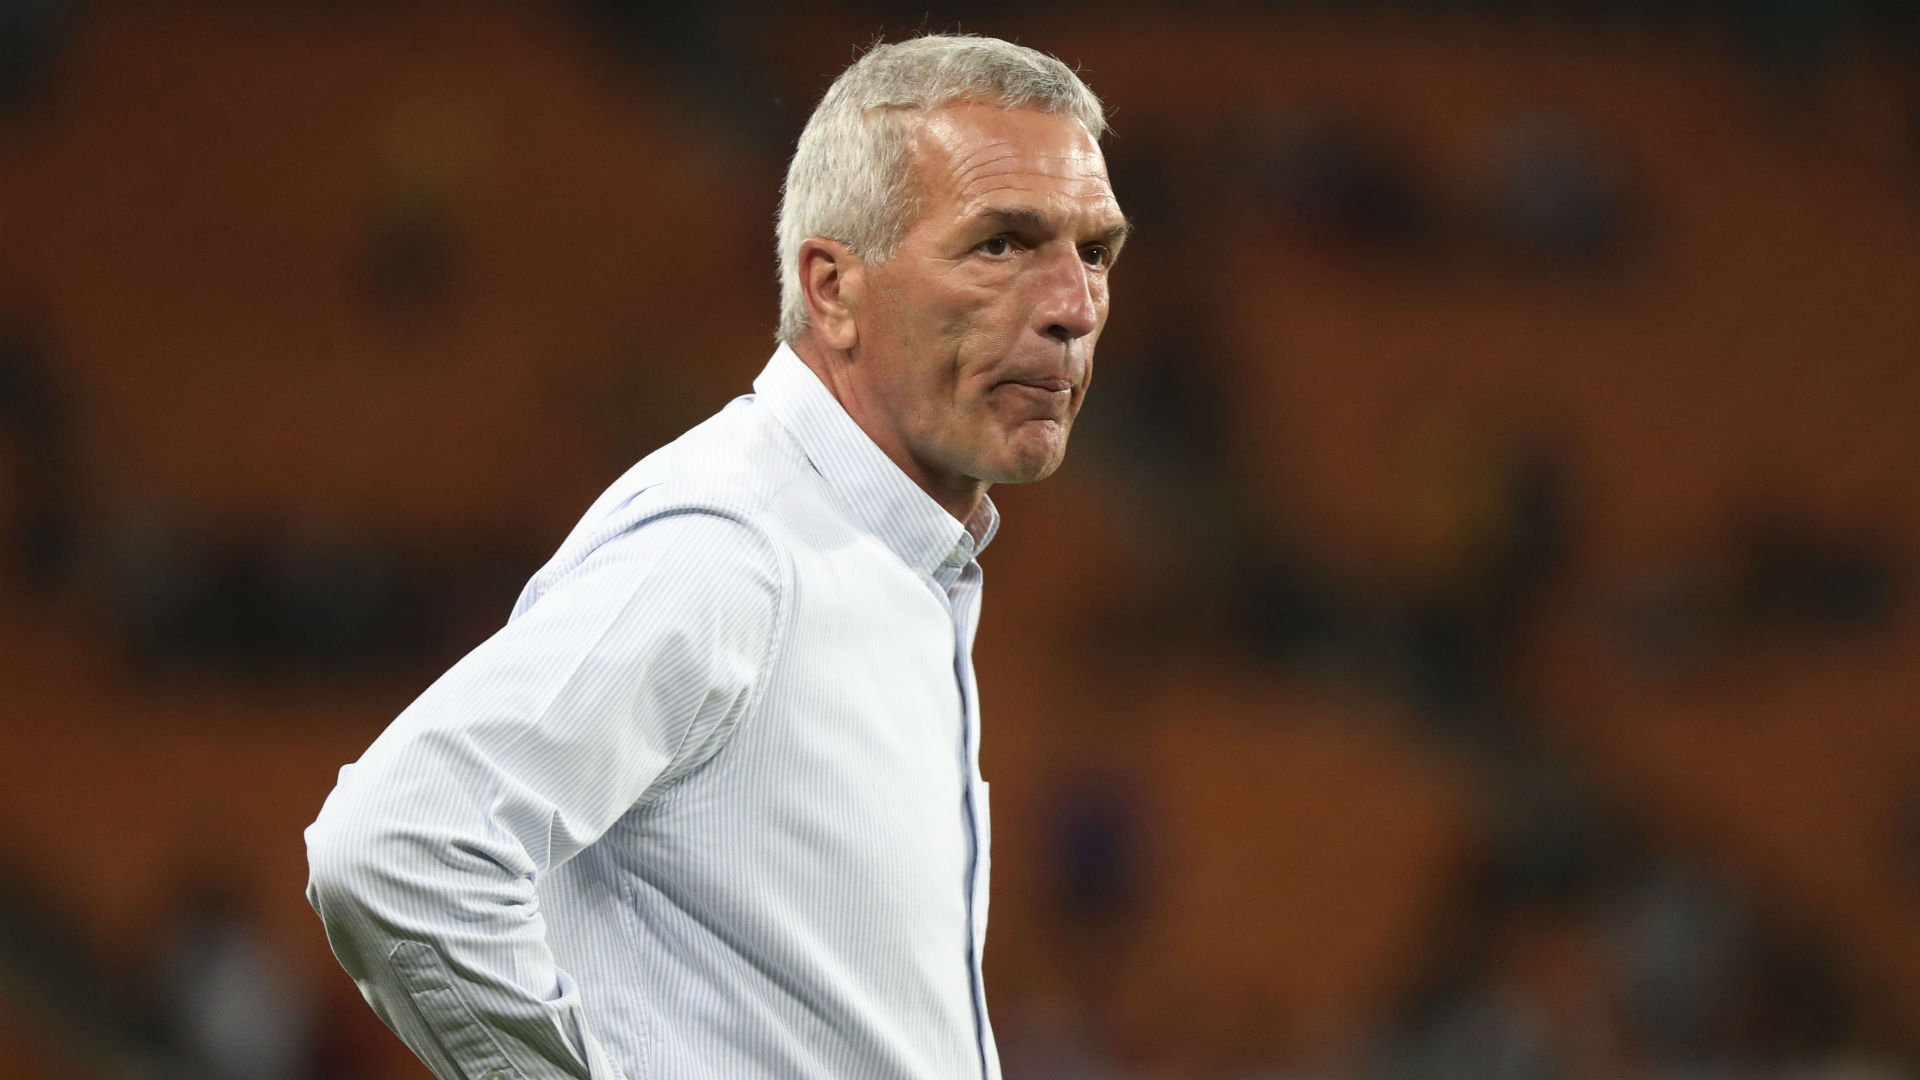 Zuma gives Kaizer Chiefs plenty to think about ahead of Orlando Pirates clash - Middendorp